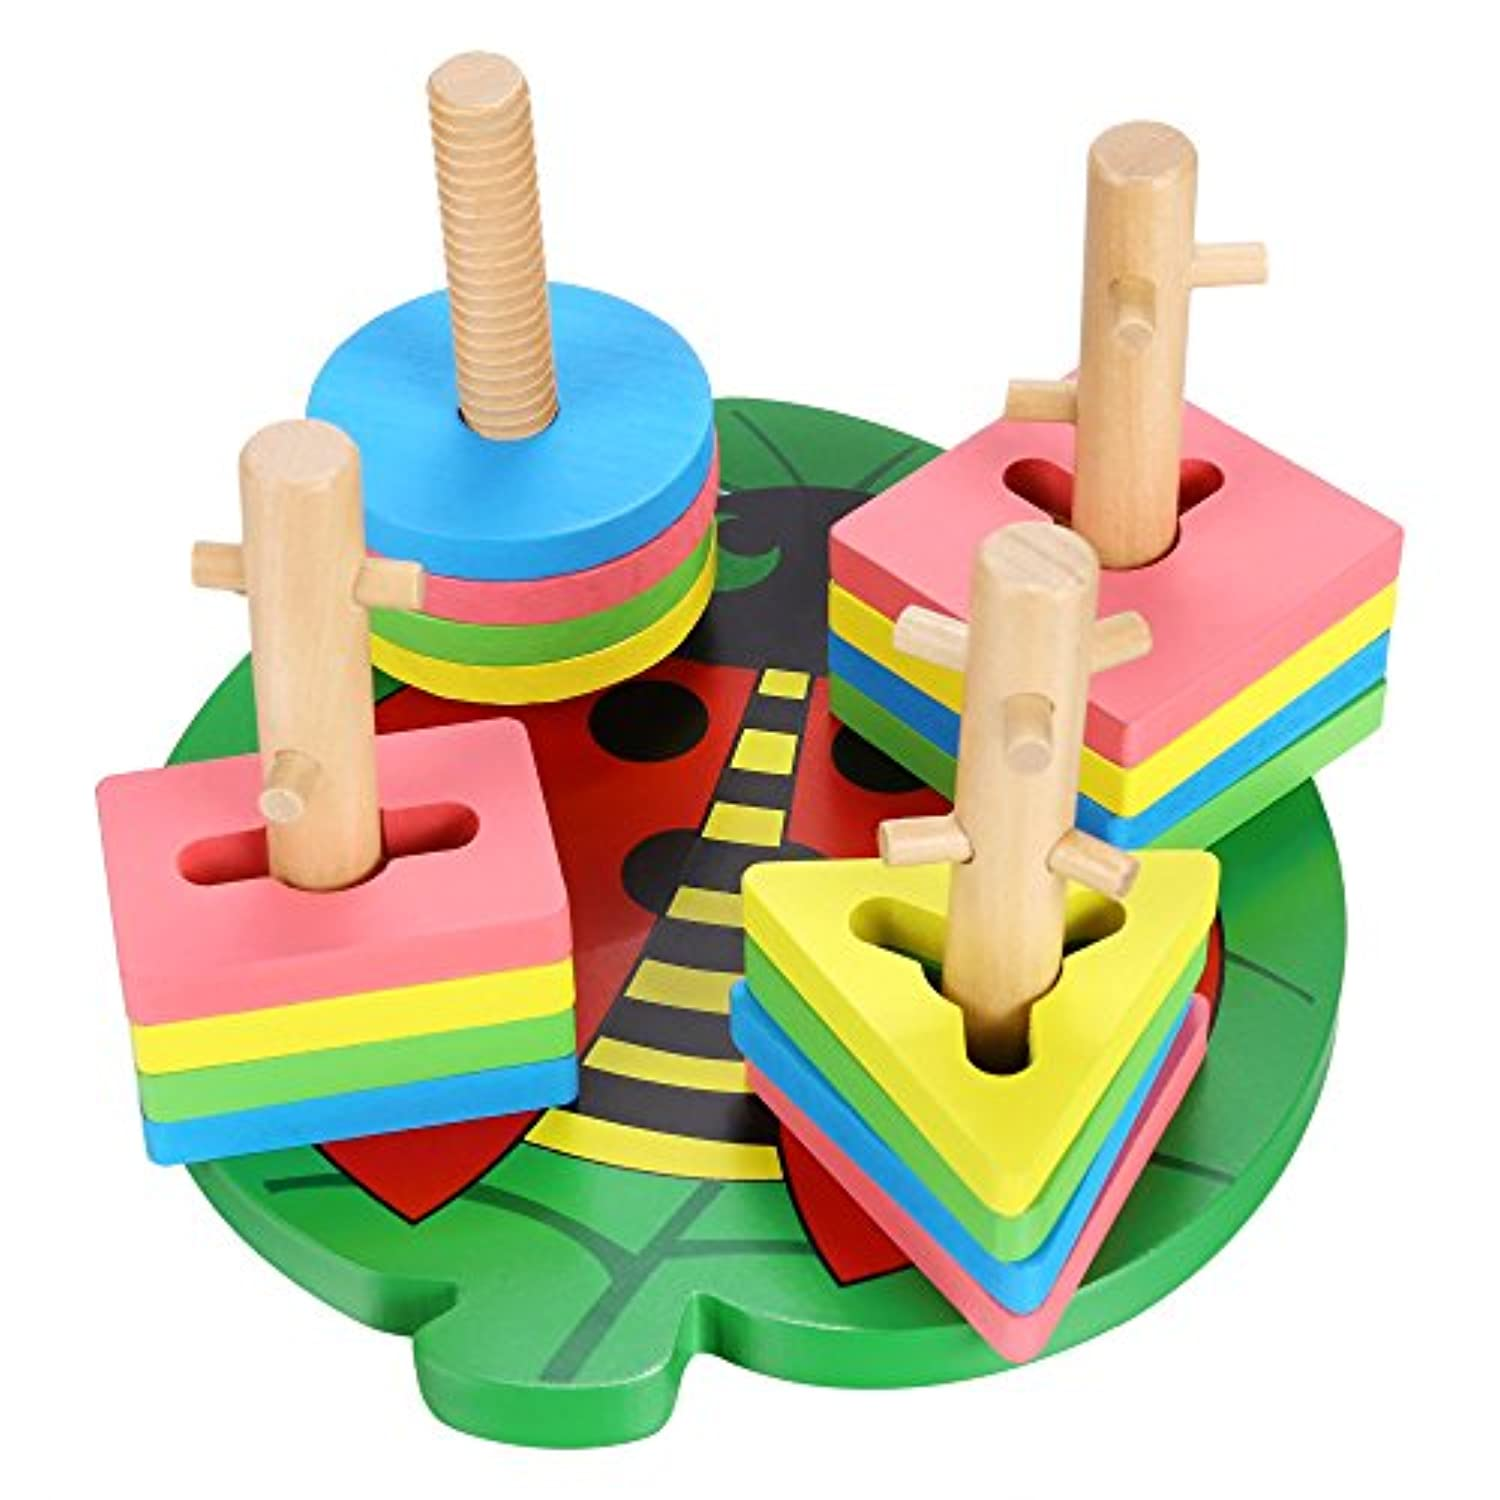 Funmily Wooden Stacking Toys & Shape Sorting Board Geometric Shape Sorter Early Childhood Development Toys for Kids (US STOCK)